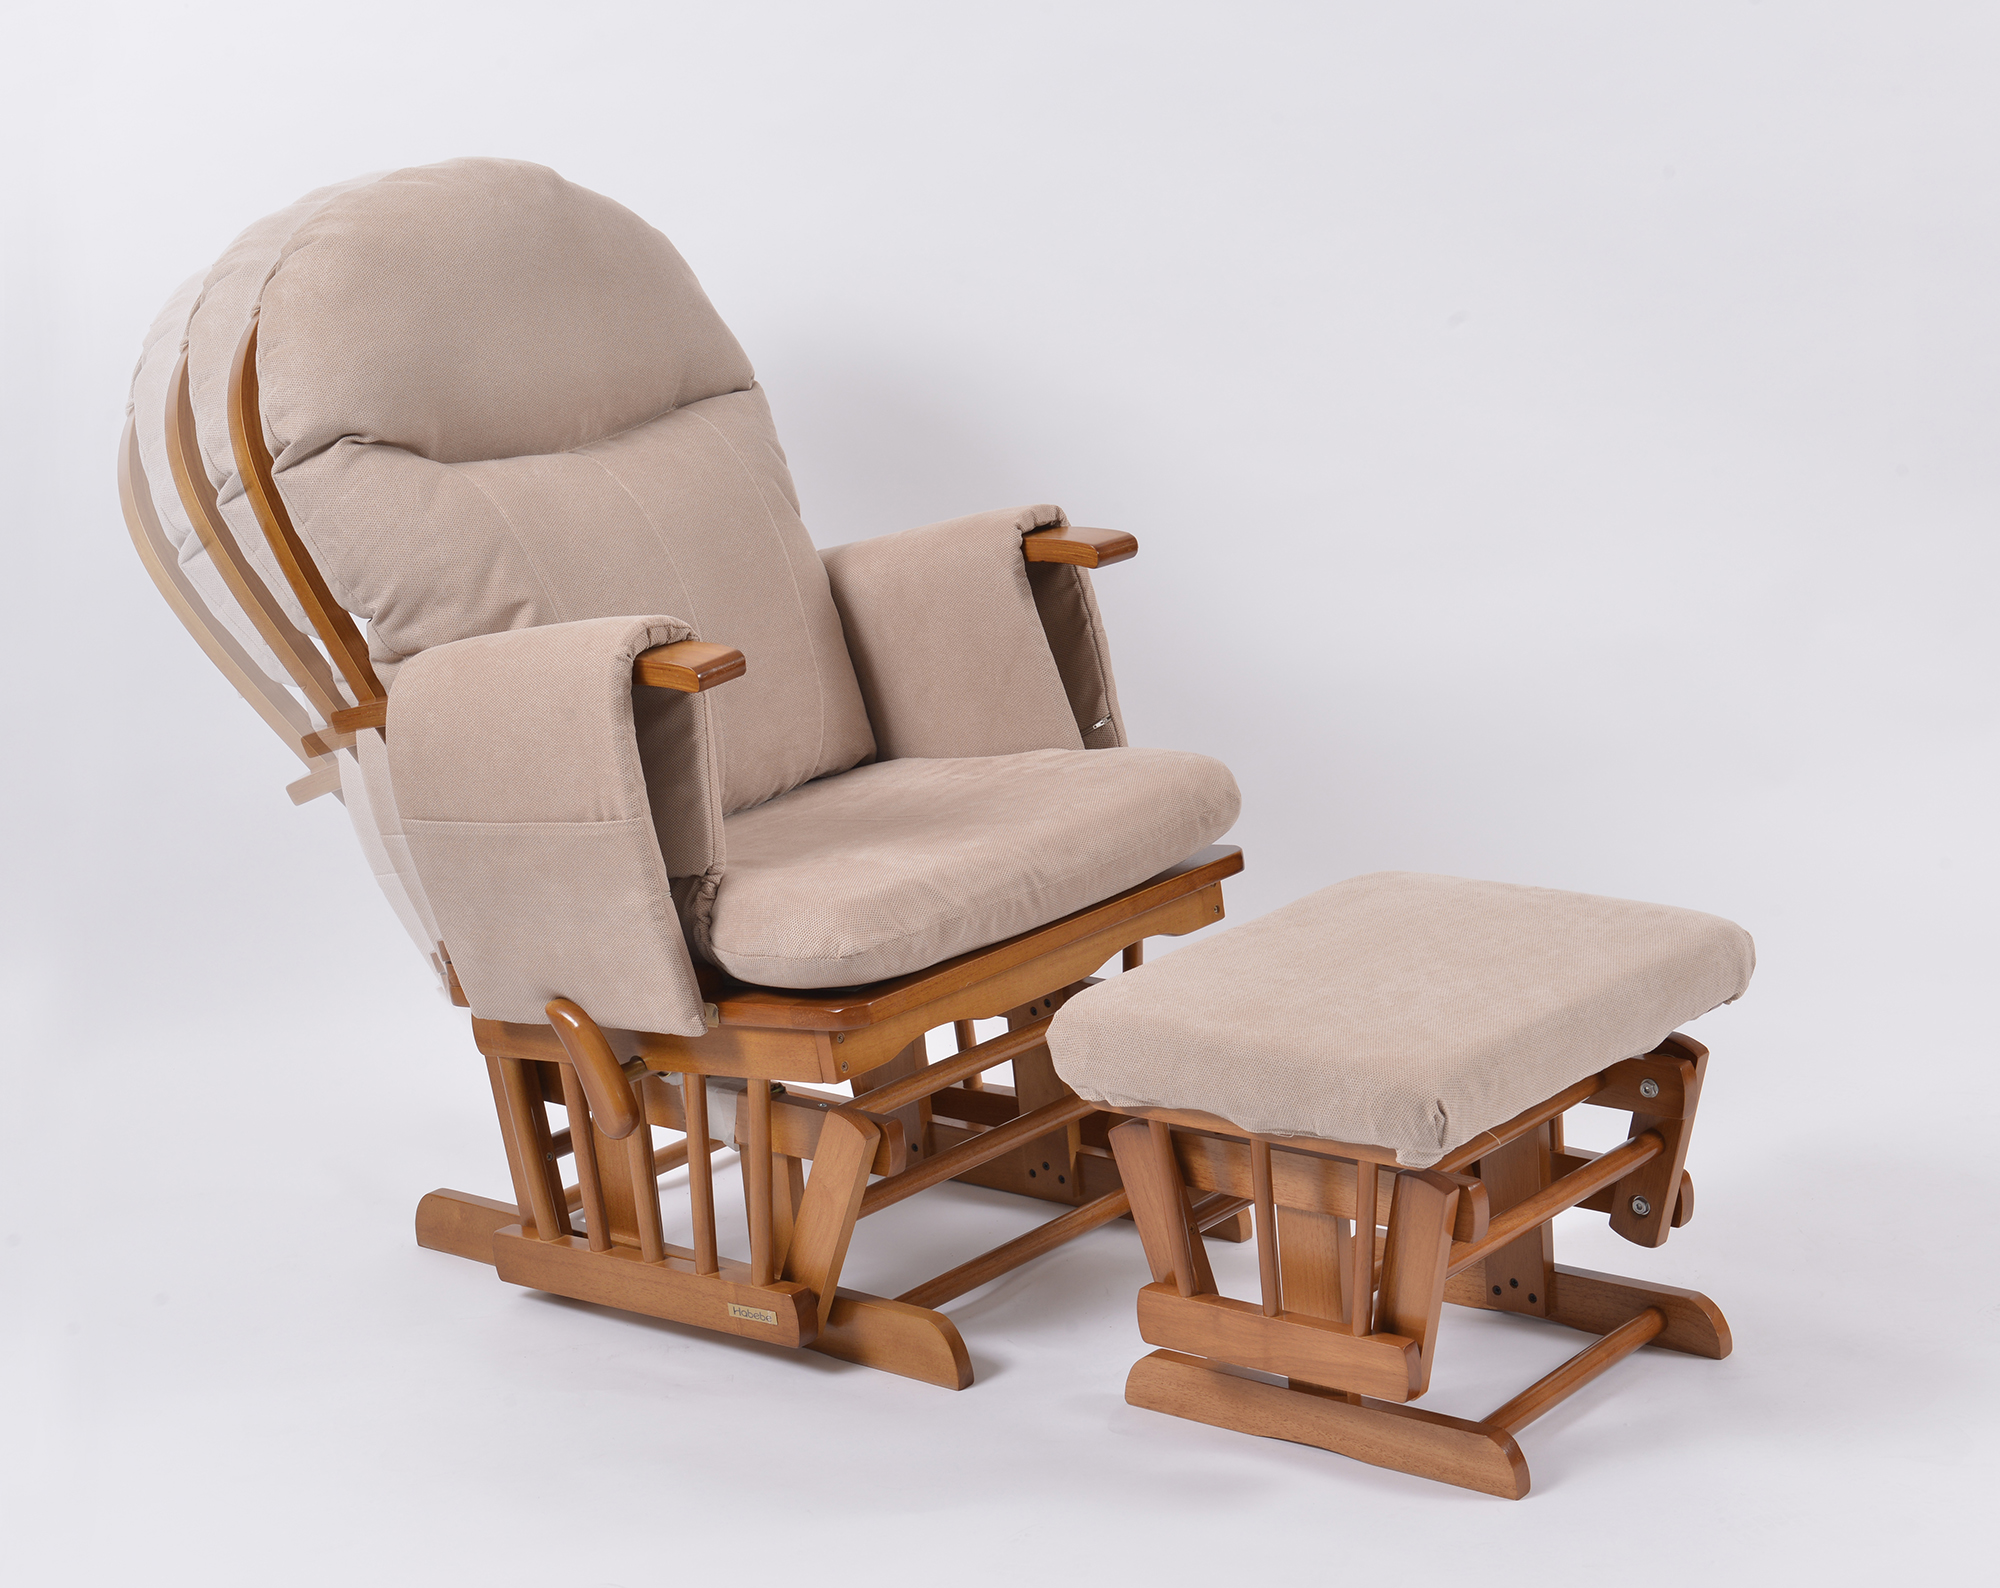 comfy nursing chair wooden swing habebe glider and stool  oak wood cream washable